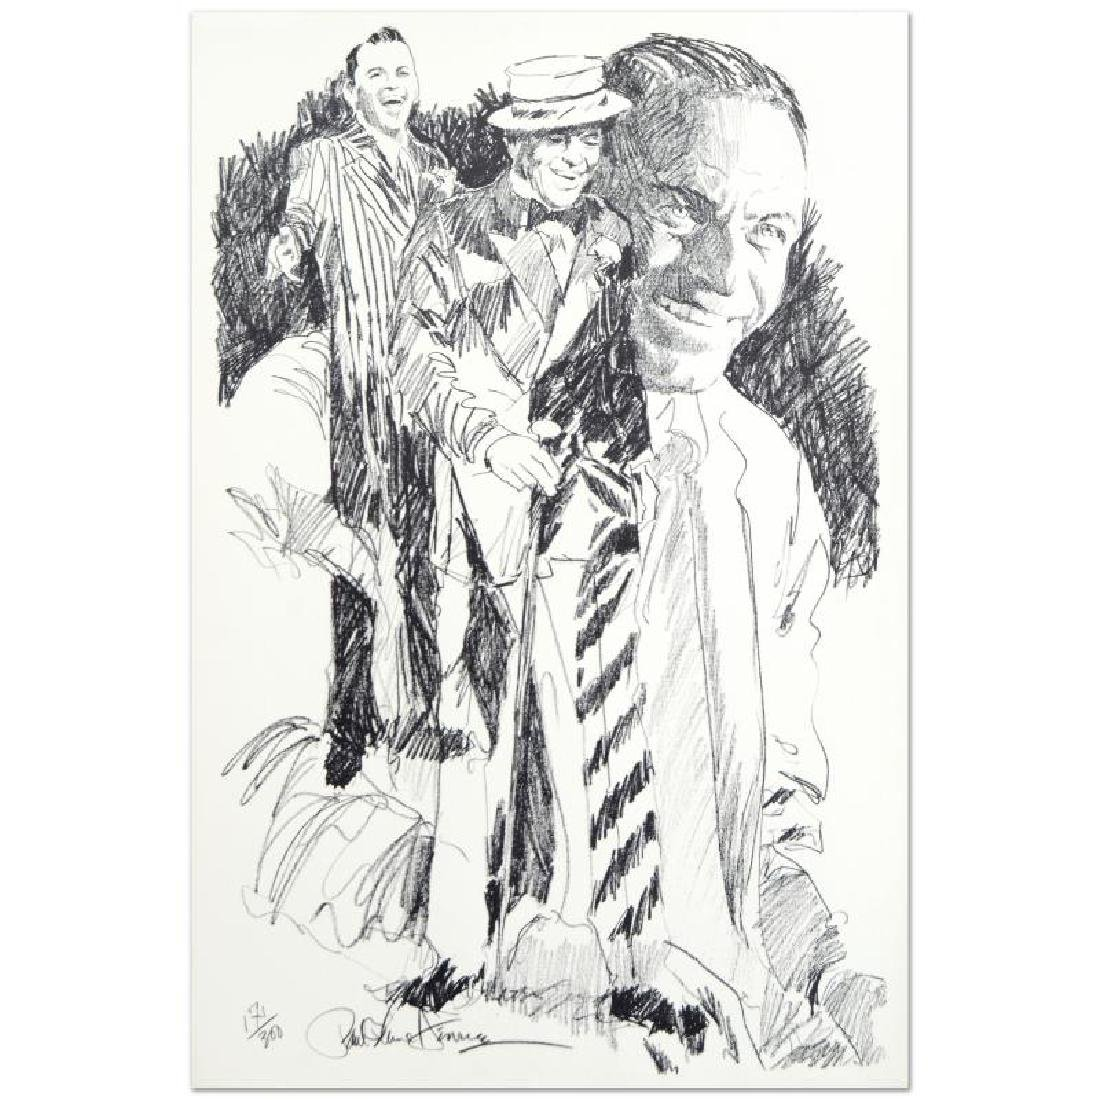 Sinatra Limited Edition Serigraph by Paul Blaine Henrie - 3